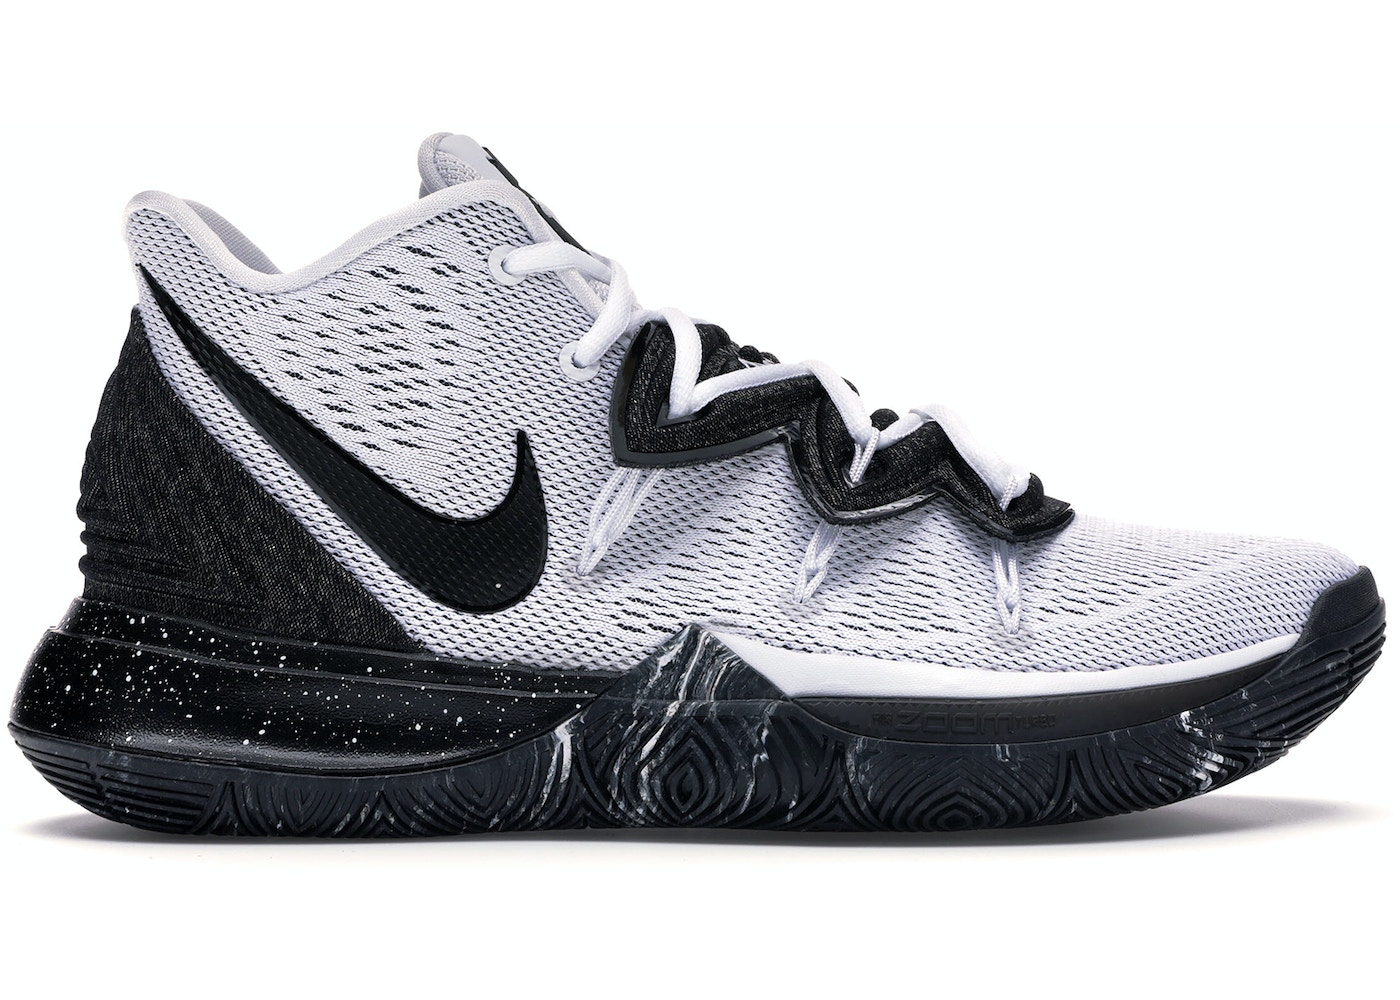 c05acd9ad10 Buy Nike Basketball Kyrie Shoes   Deadstock Sneakers